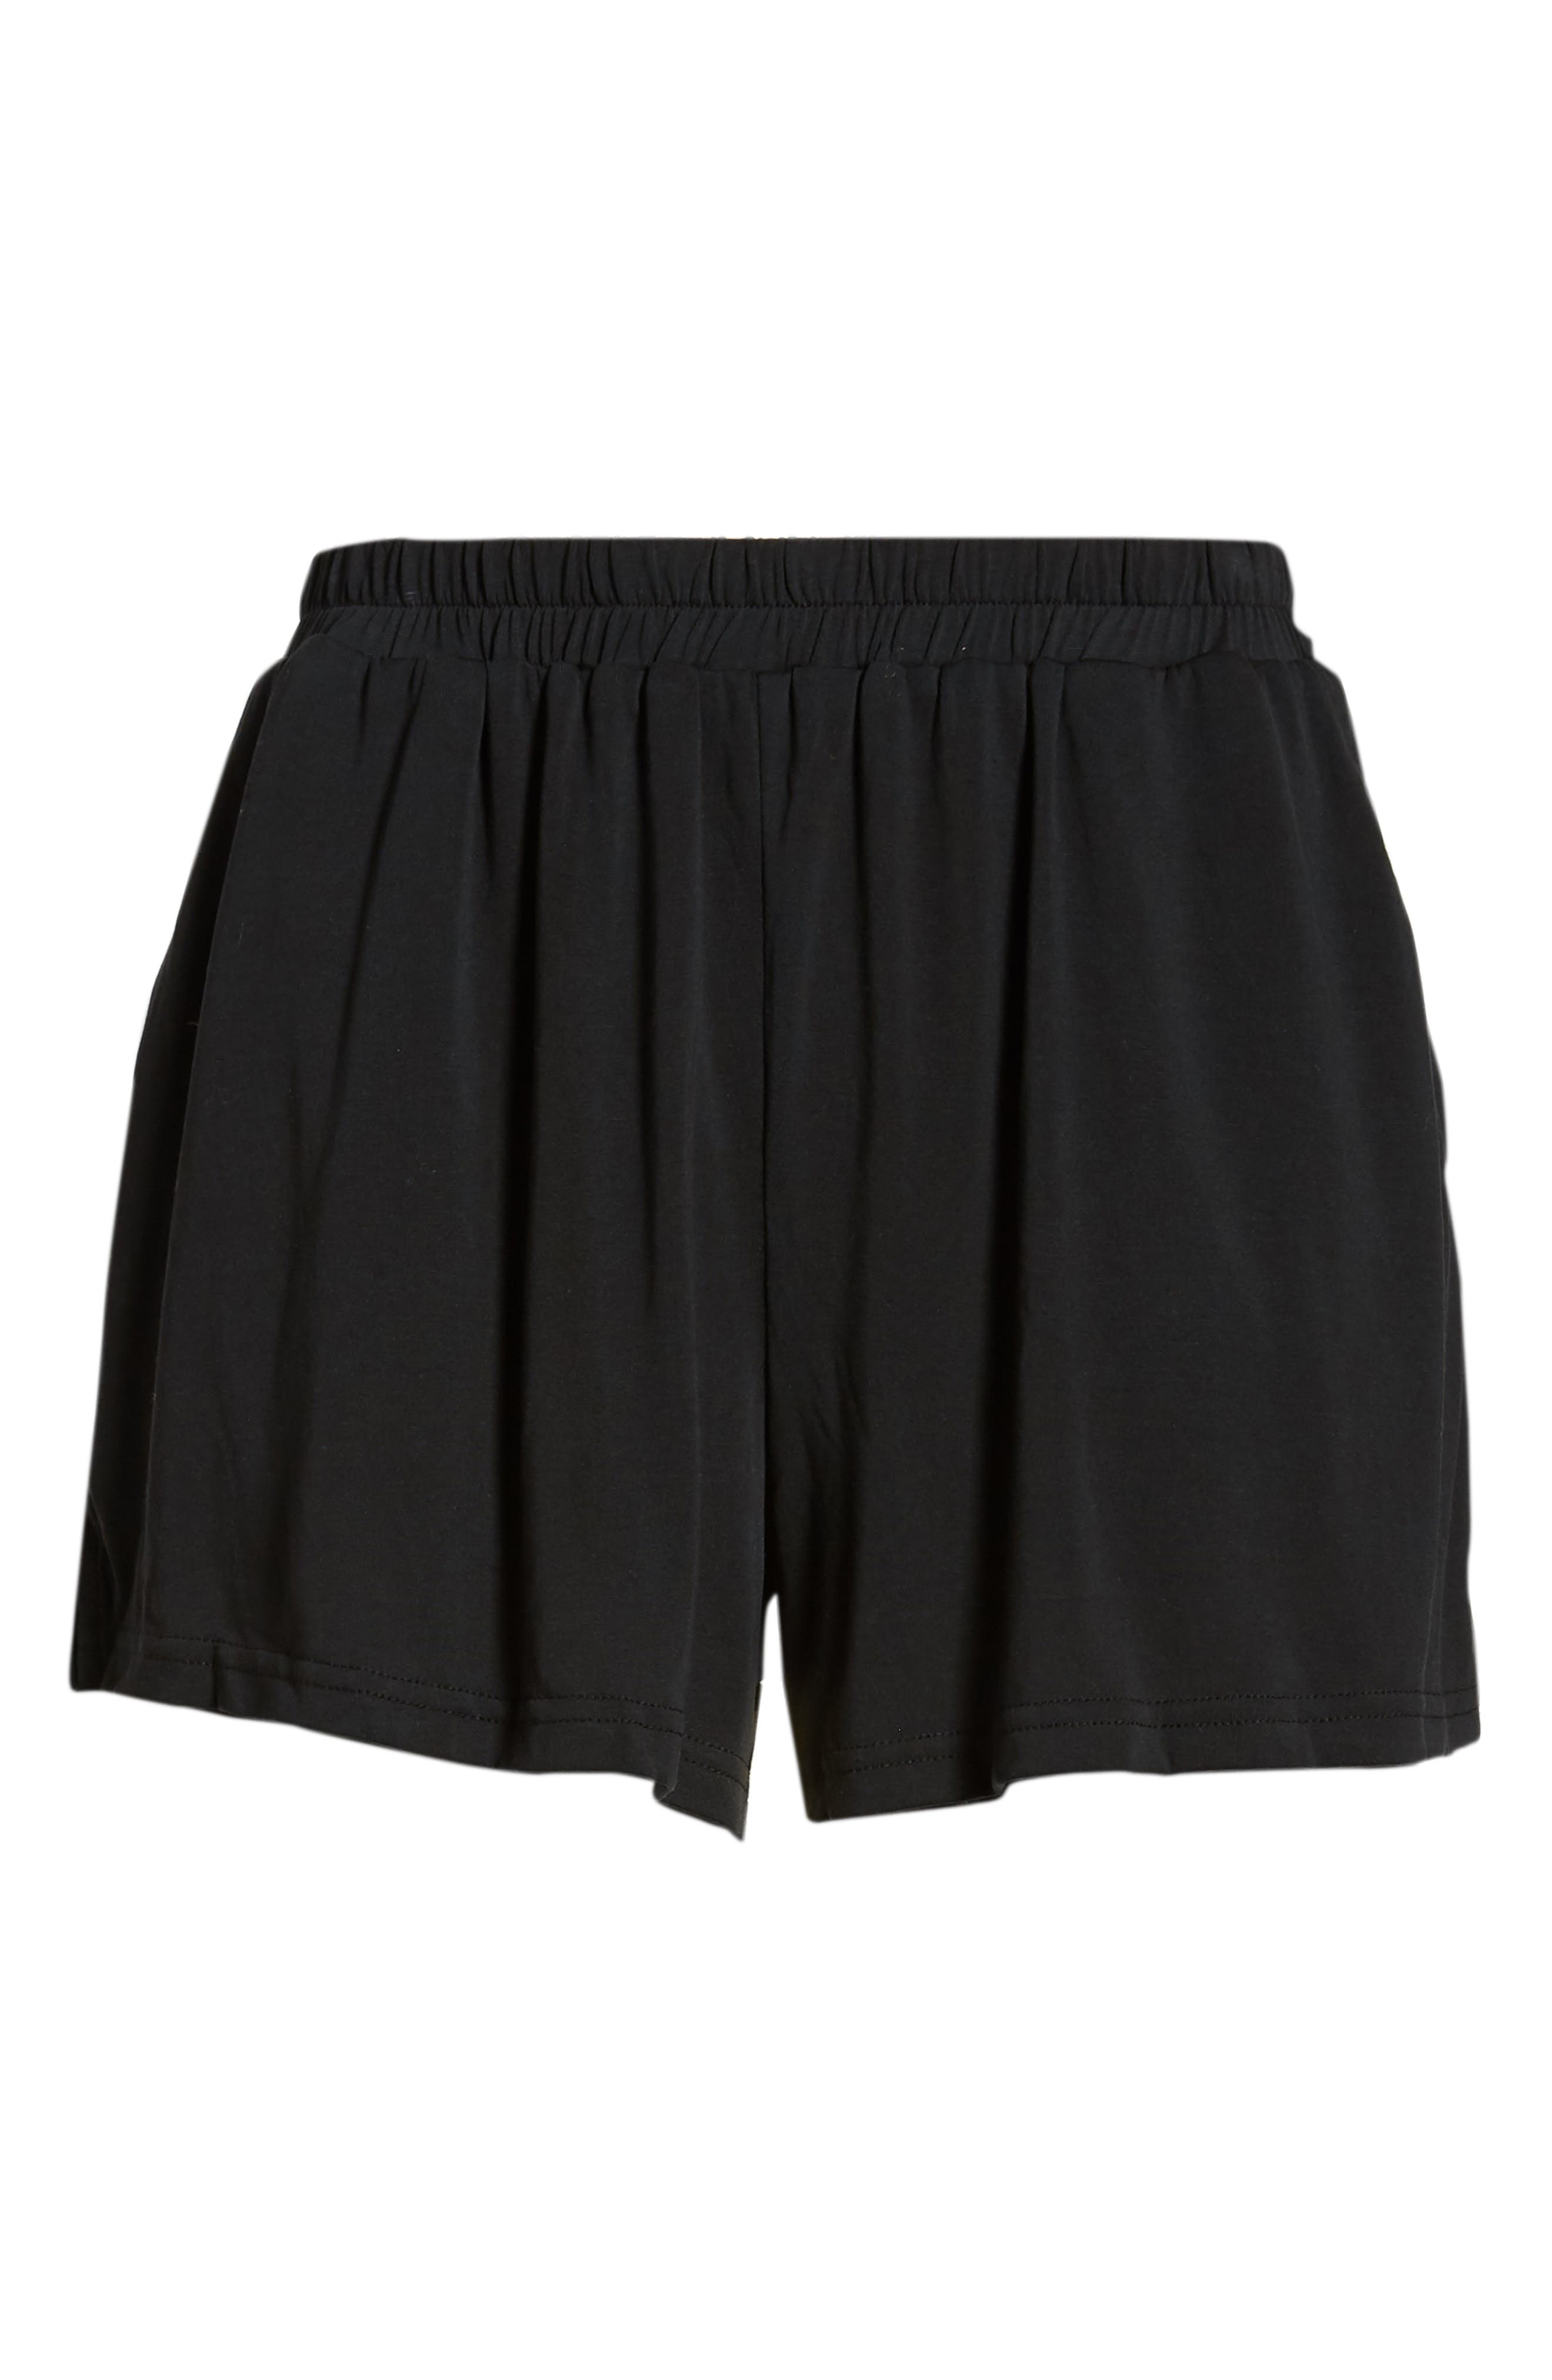 Laguna Shorts,                             Alternate thumbnail 6, color,